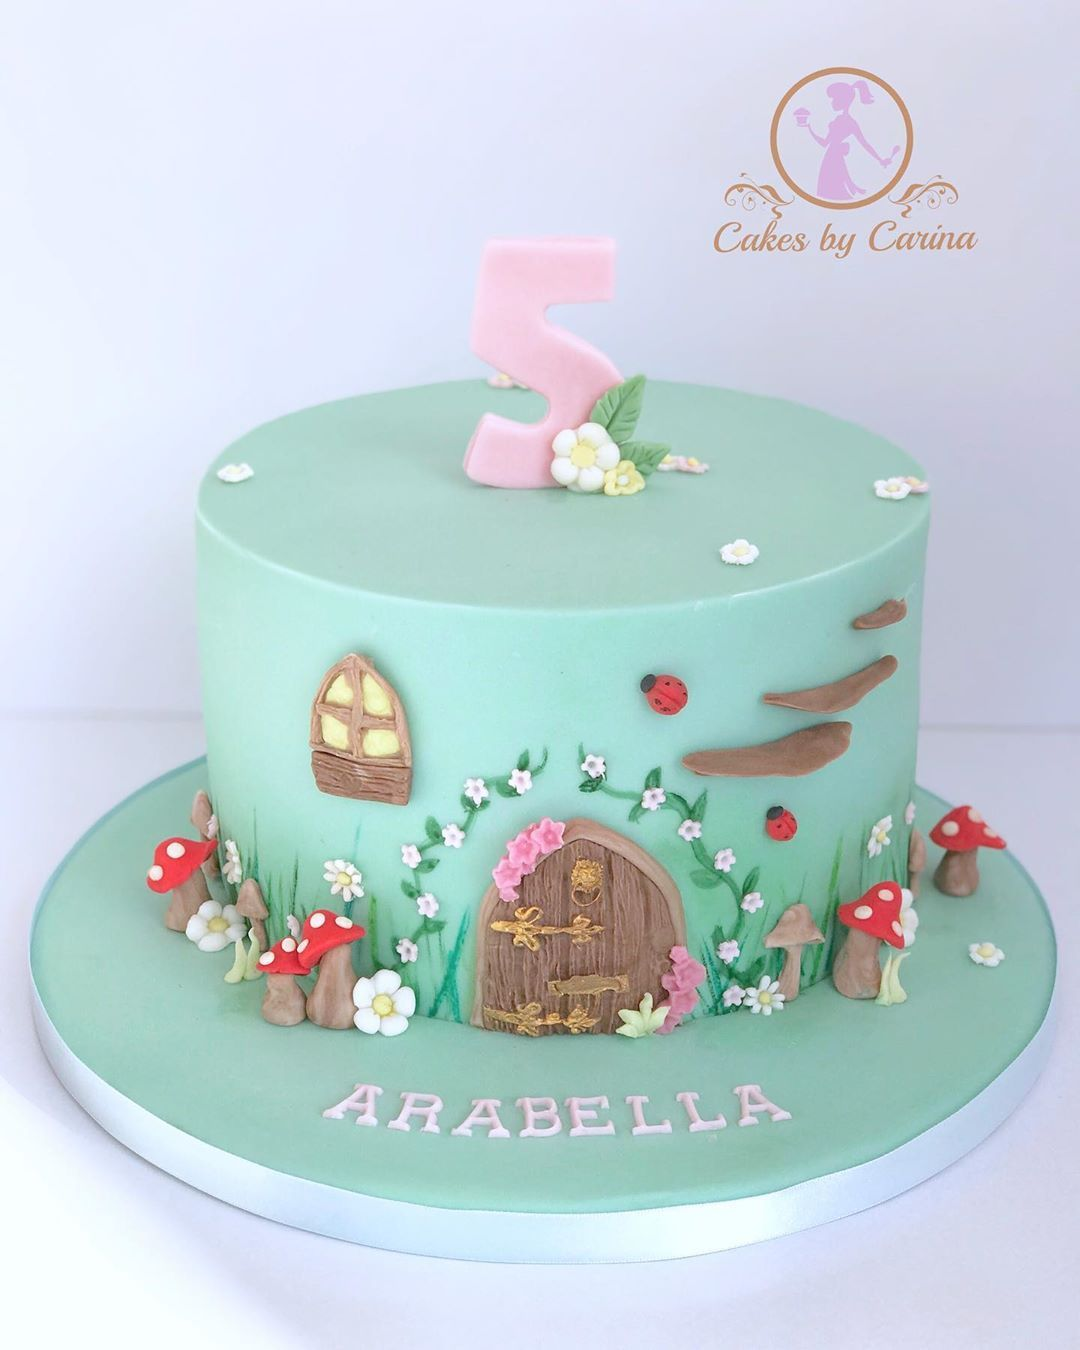 Cakes By Carina On Instagram A Happy Birthday To Arabella This Weekend Also A Magical Fairy Garden Themed Cake For Her 5th Birthday Fairygardencake